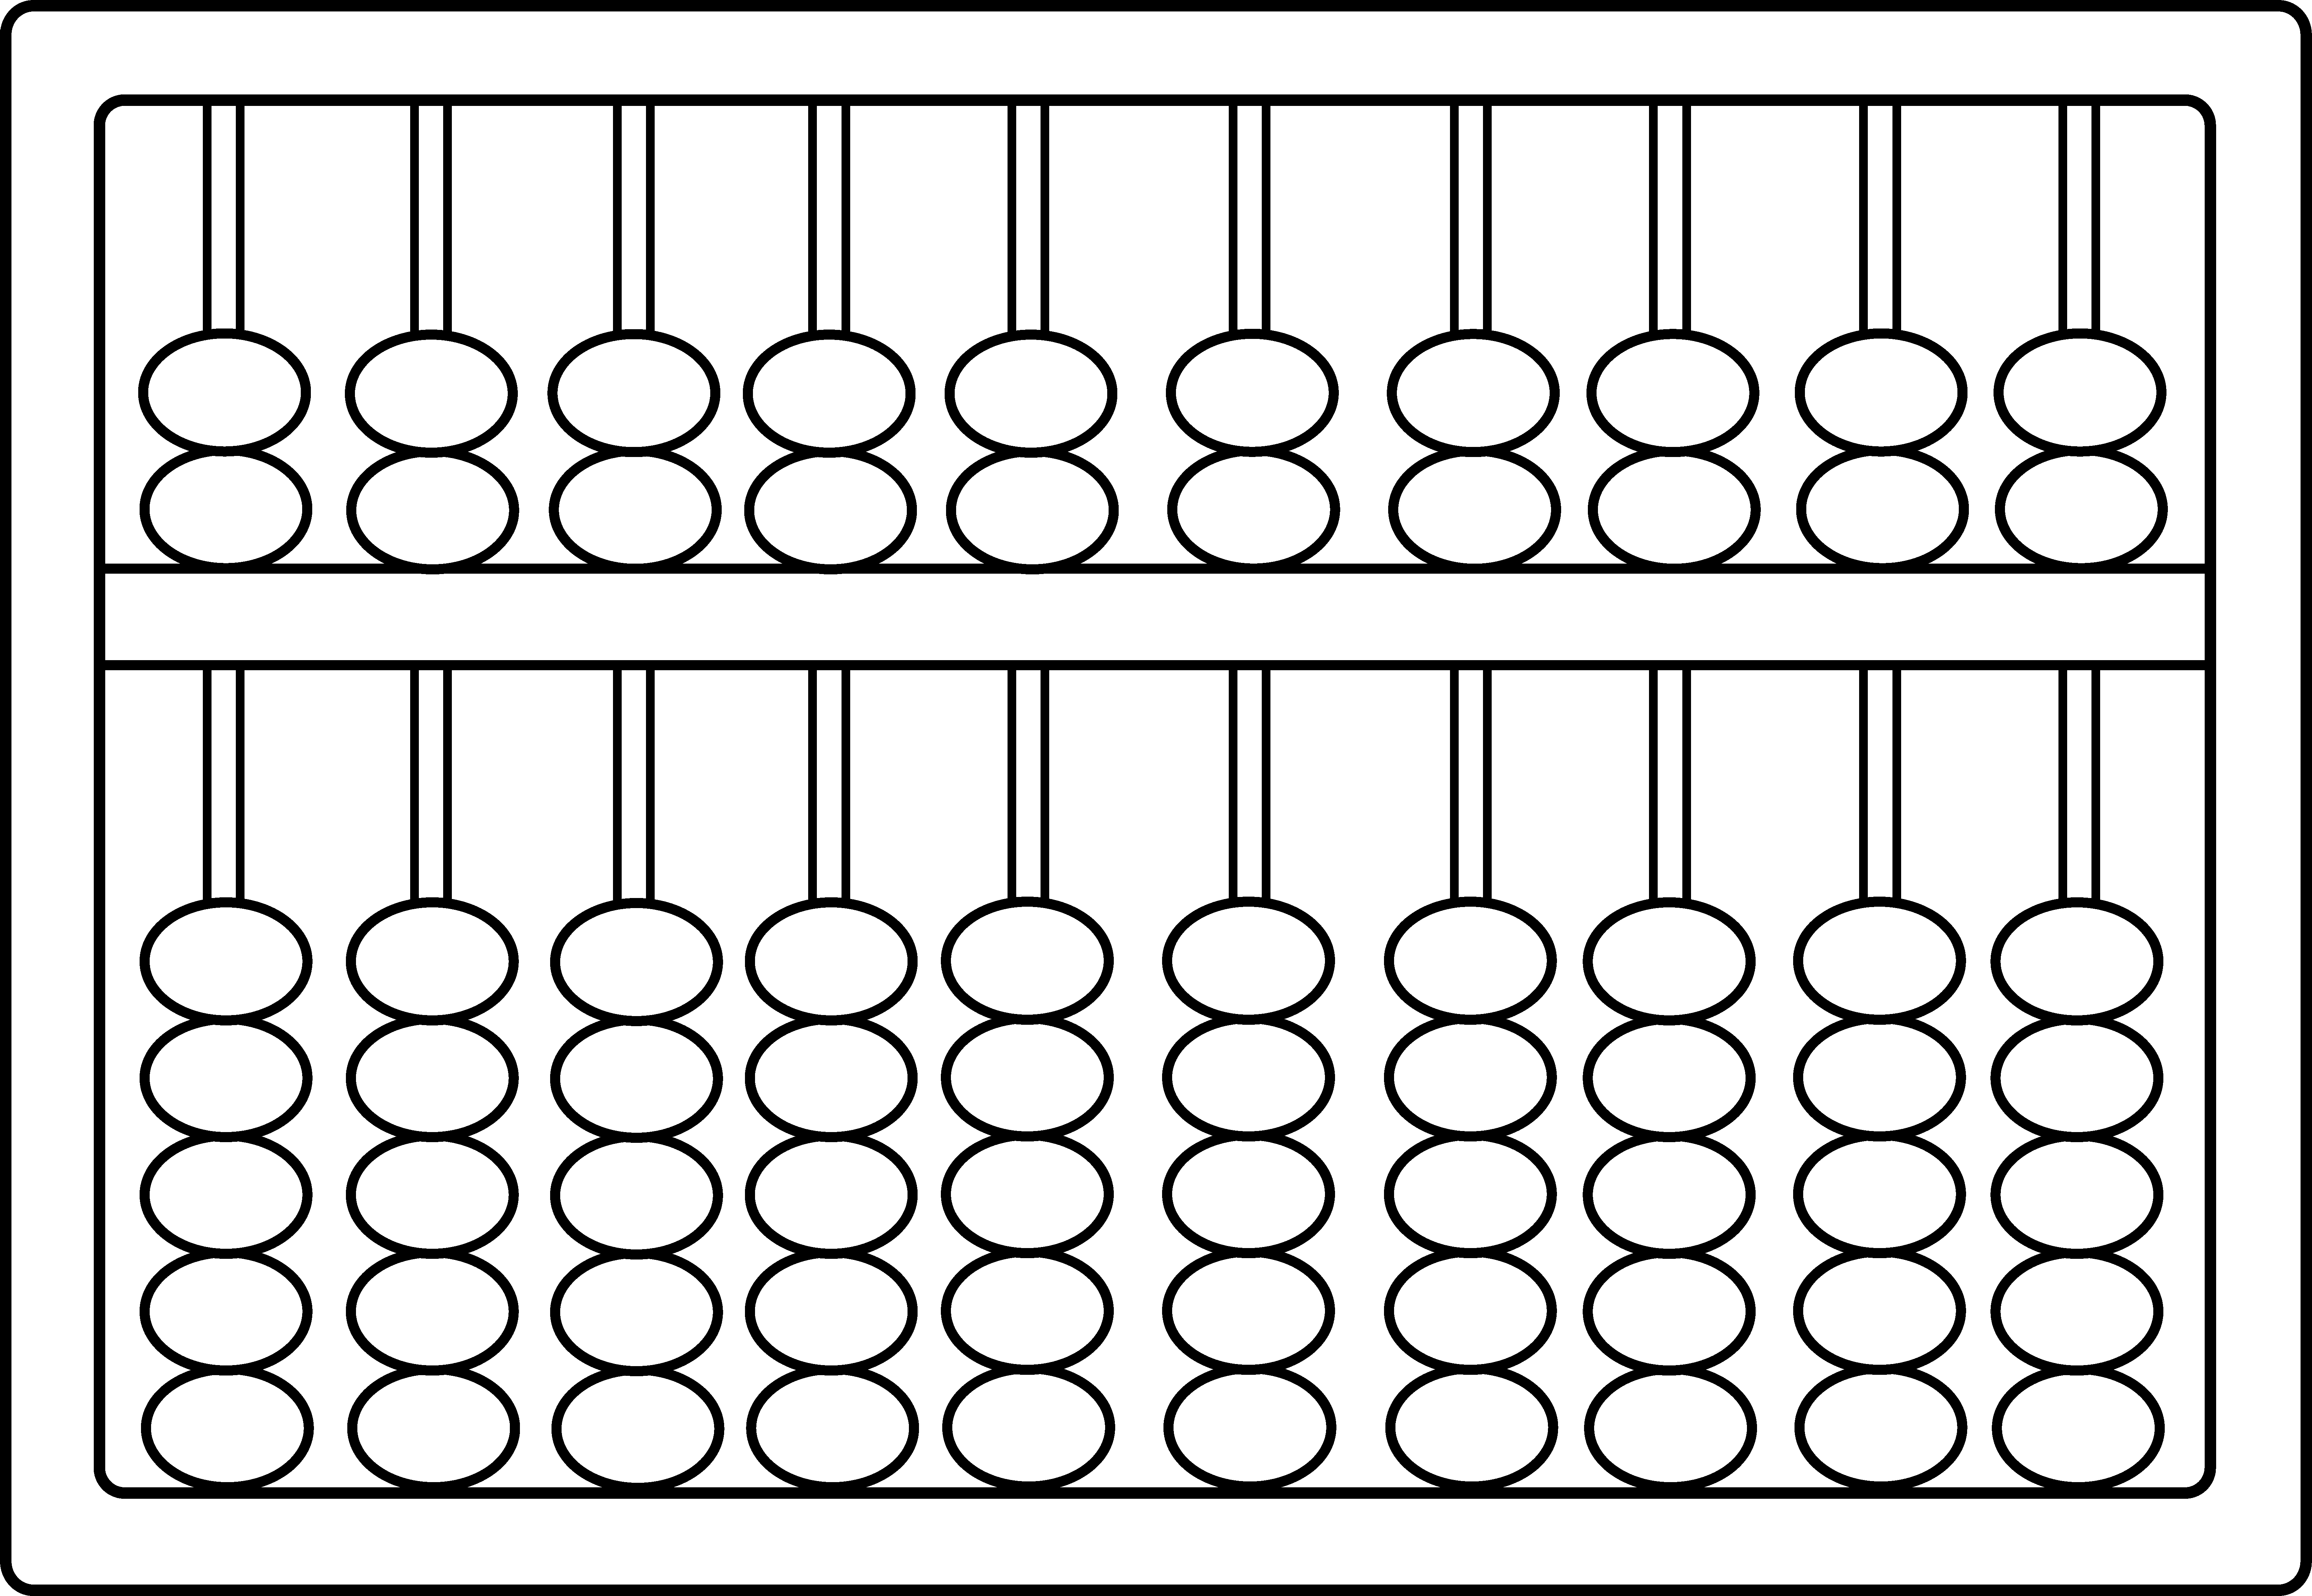 Free Abacus Pictures, Download Free Clip Art, Free Clip Art.